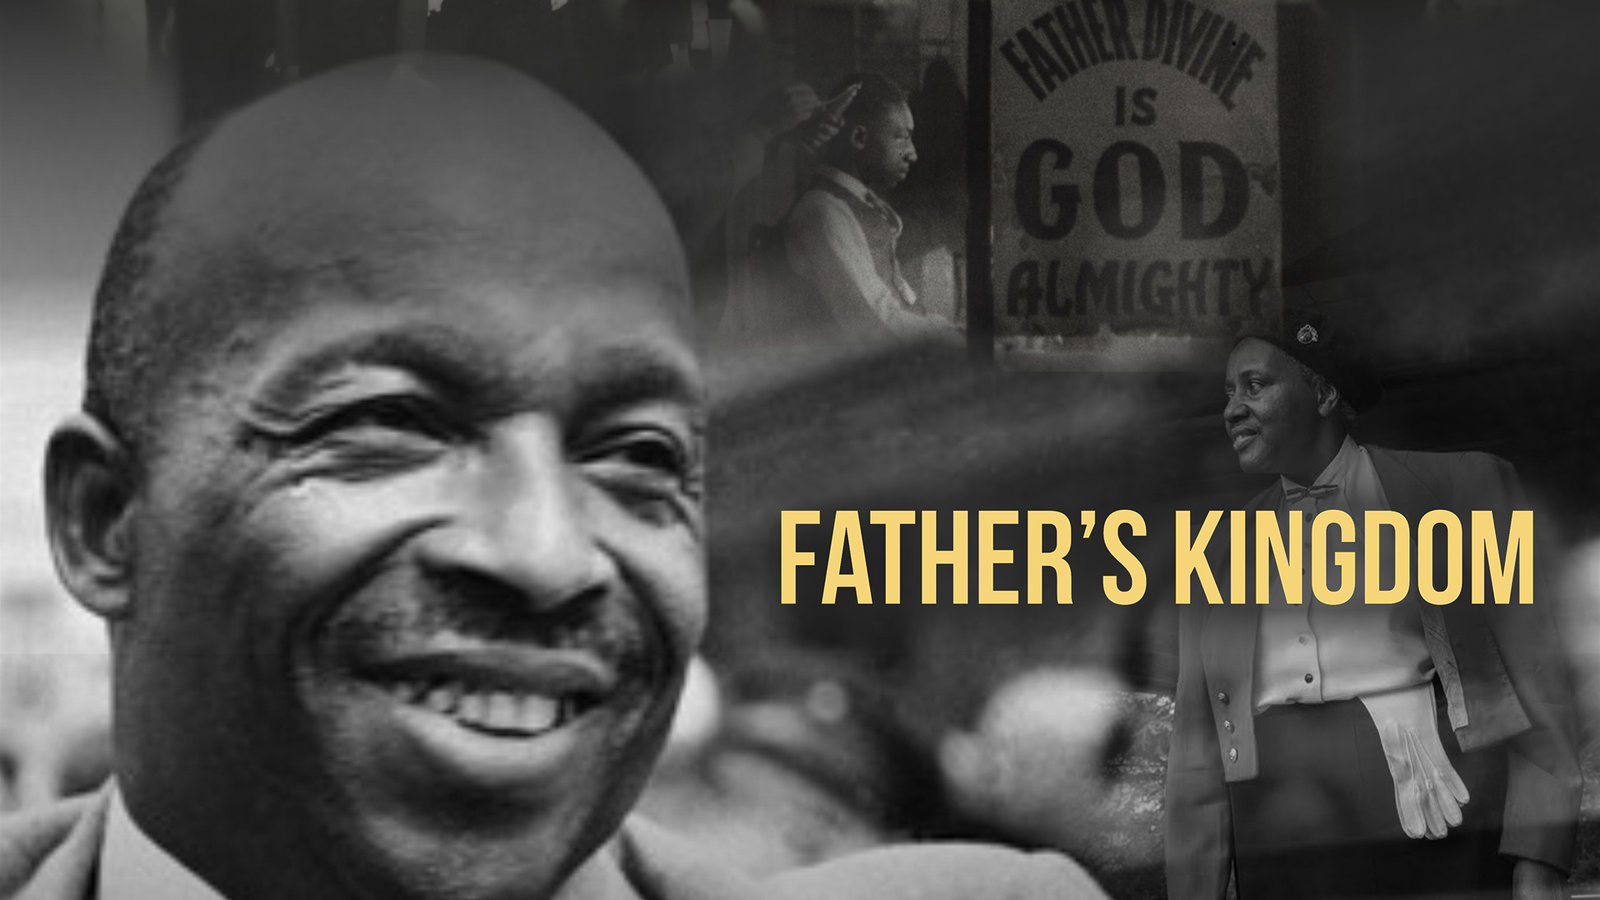 Father's Kingdom - The Life and Work of Activist Father Divine